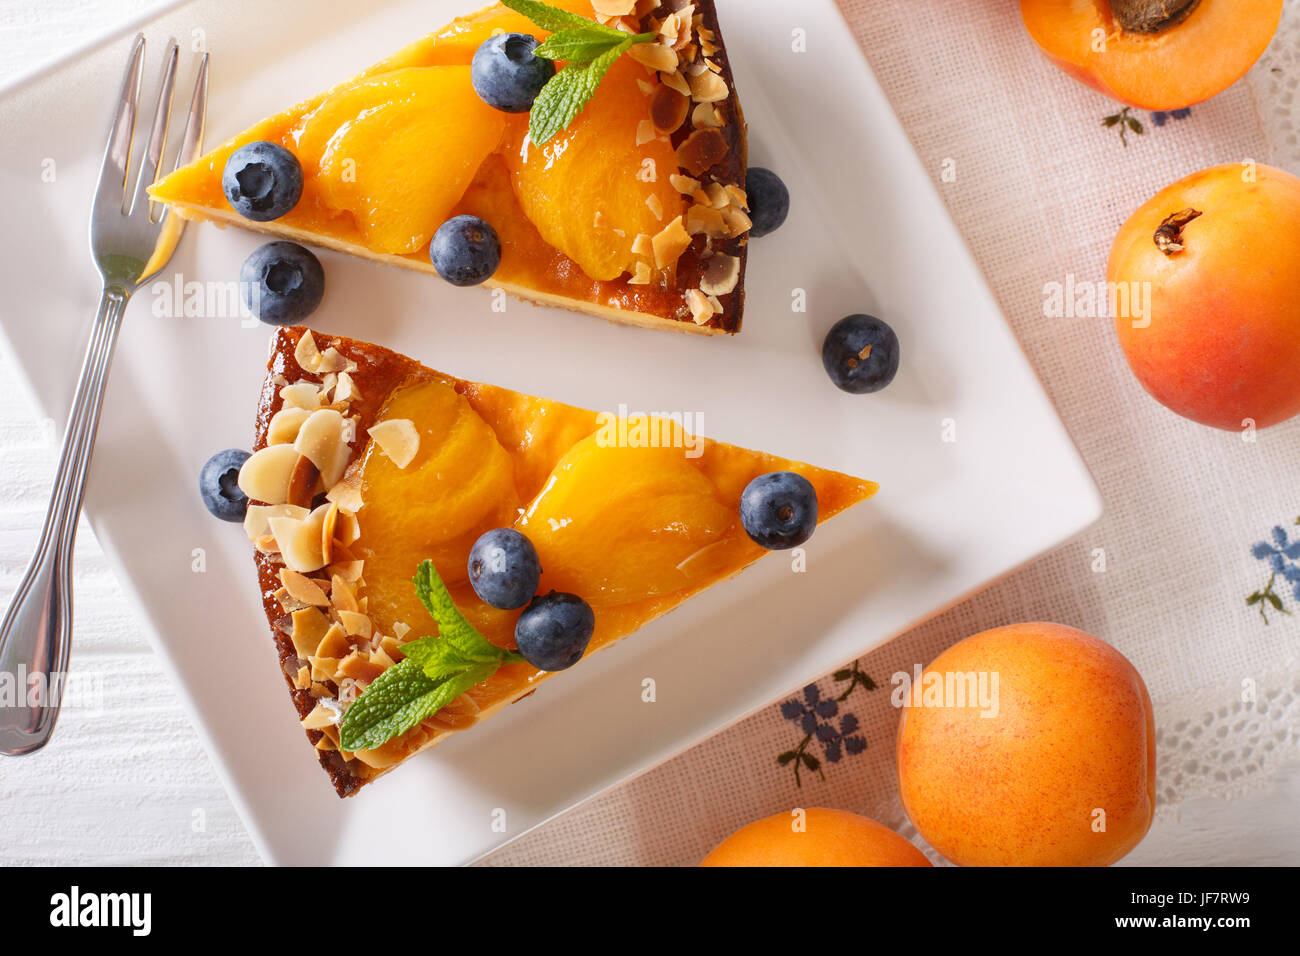 Apricot cake with blueberries, mint and nuts close-up on a plate. horizontal view from above - Stock Image